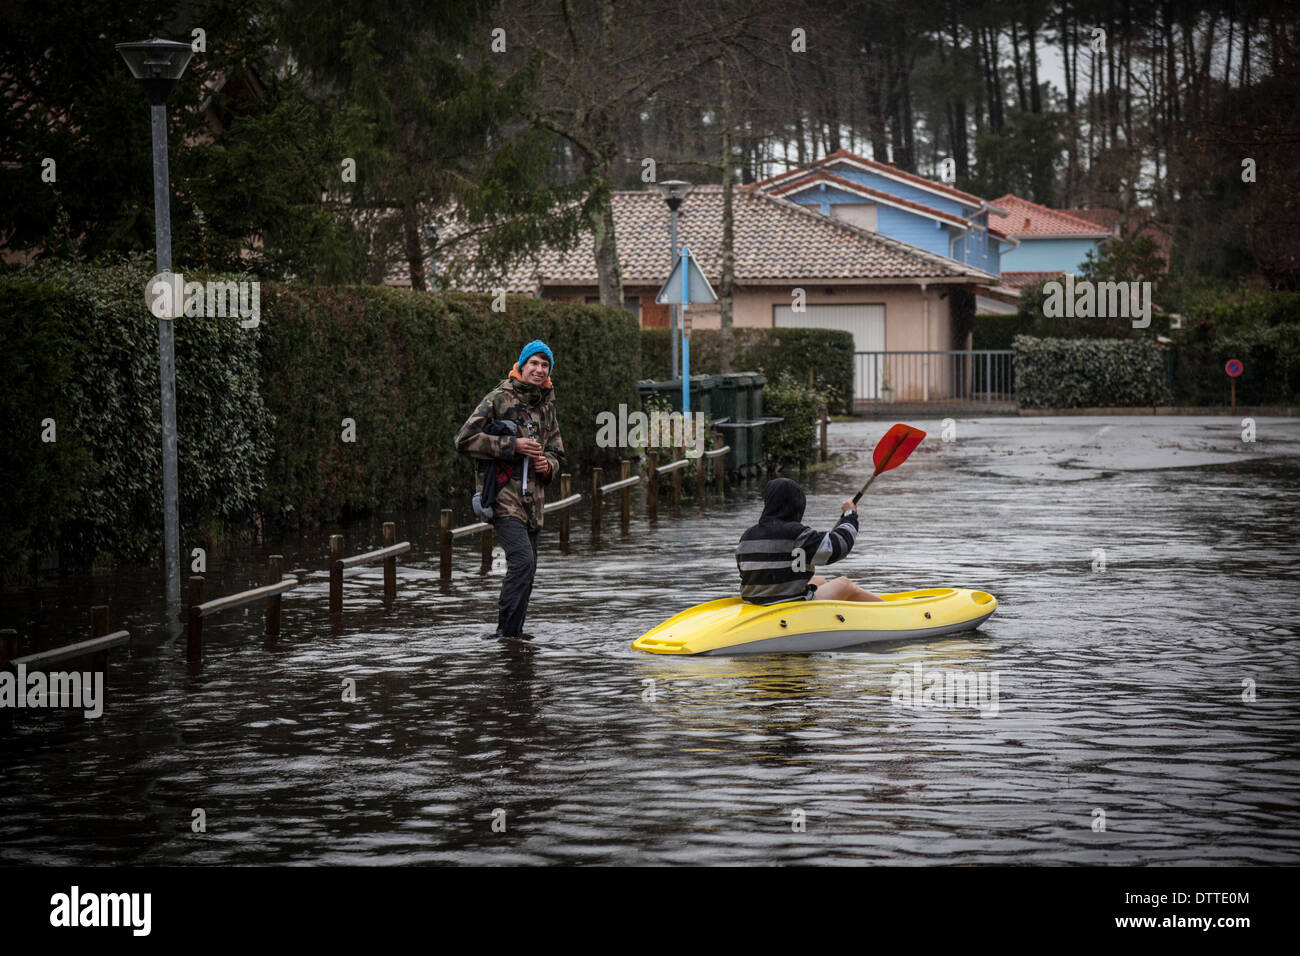 In Capbreton (Landes - France), boating on a flooded street. All opportunities are good for youngish people to have fun. - Stock Image